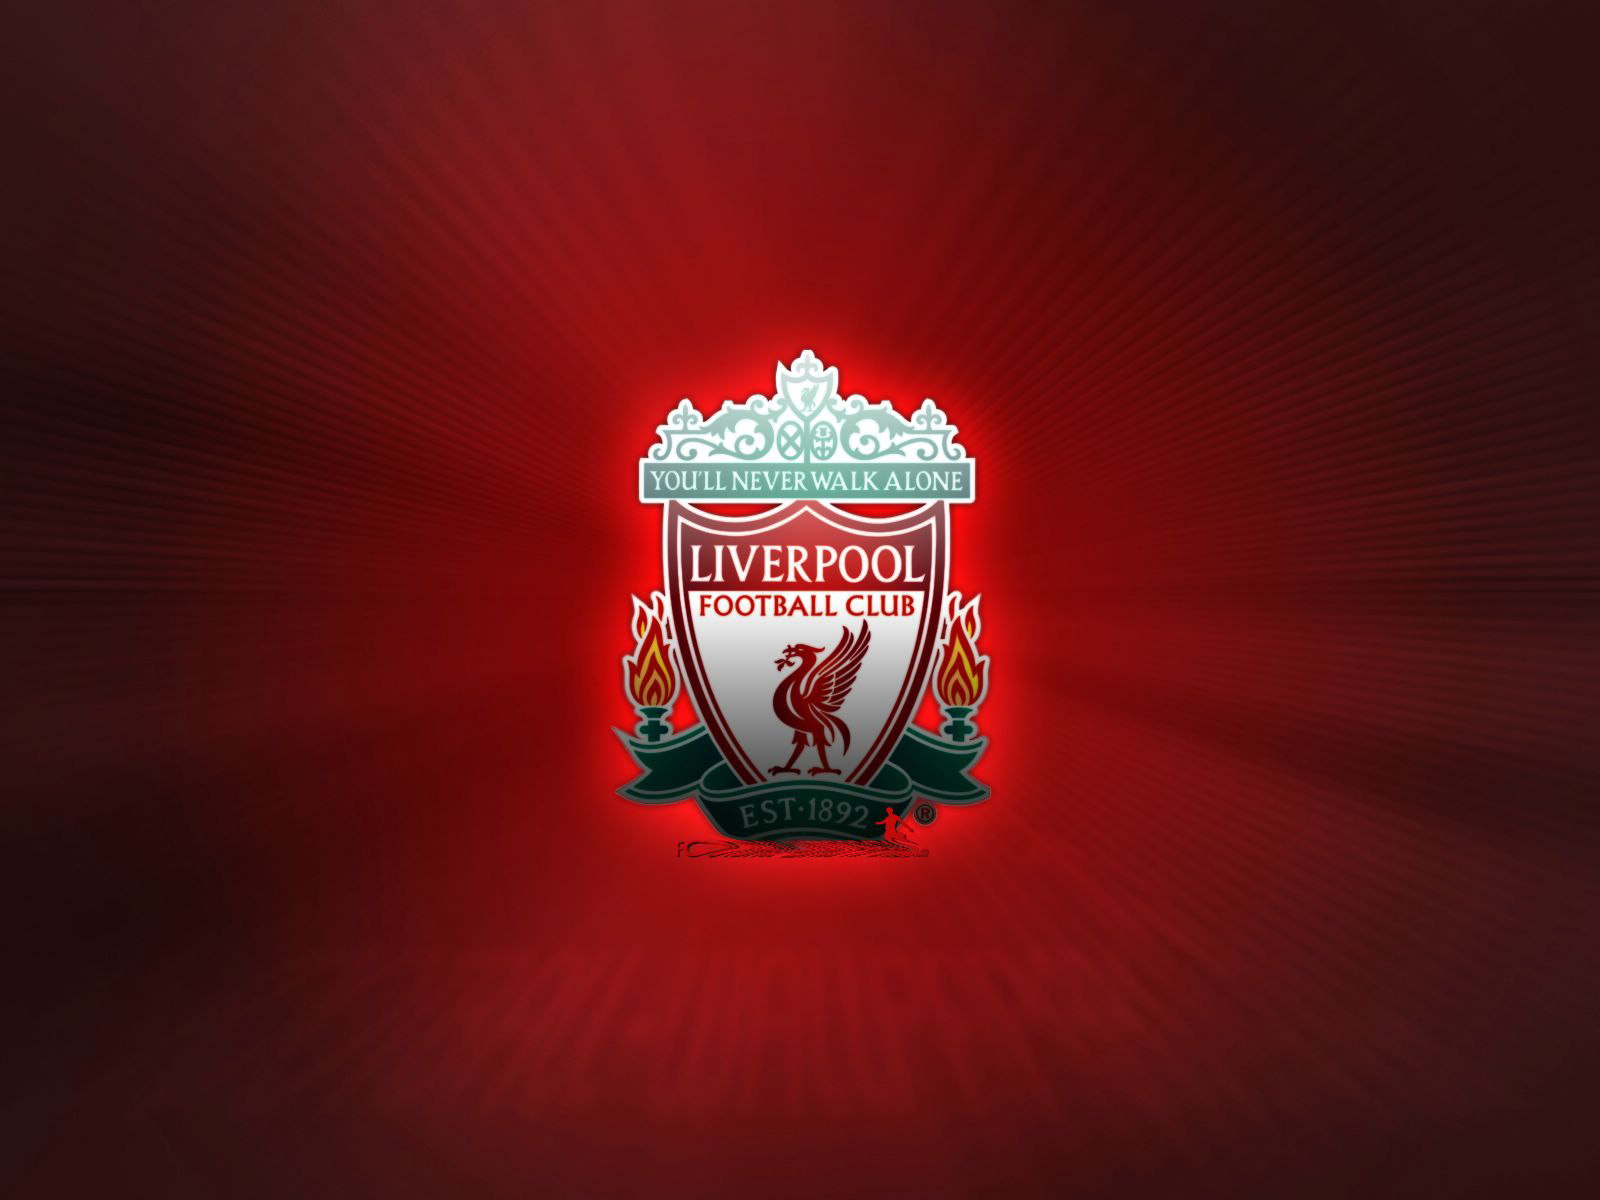 HQ Liverpoolfc 007 Wallpaper   HQ Wallpapers 1600x1200